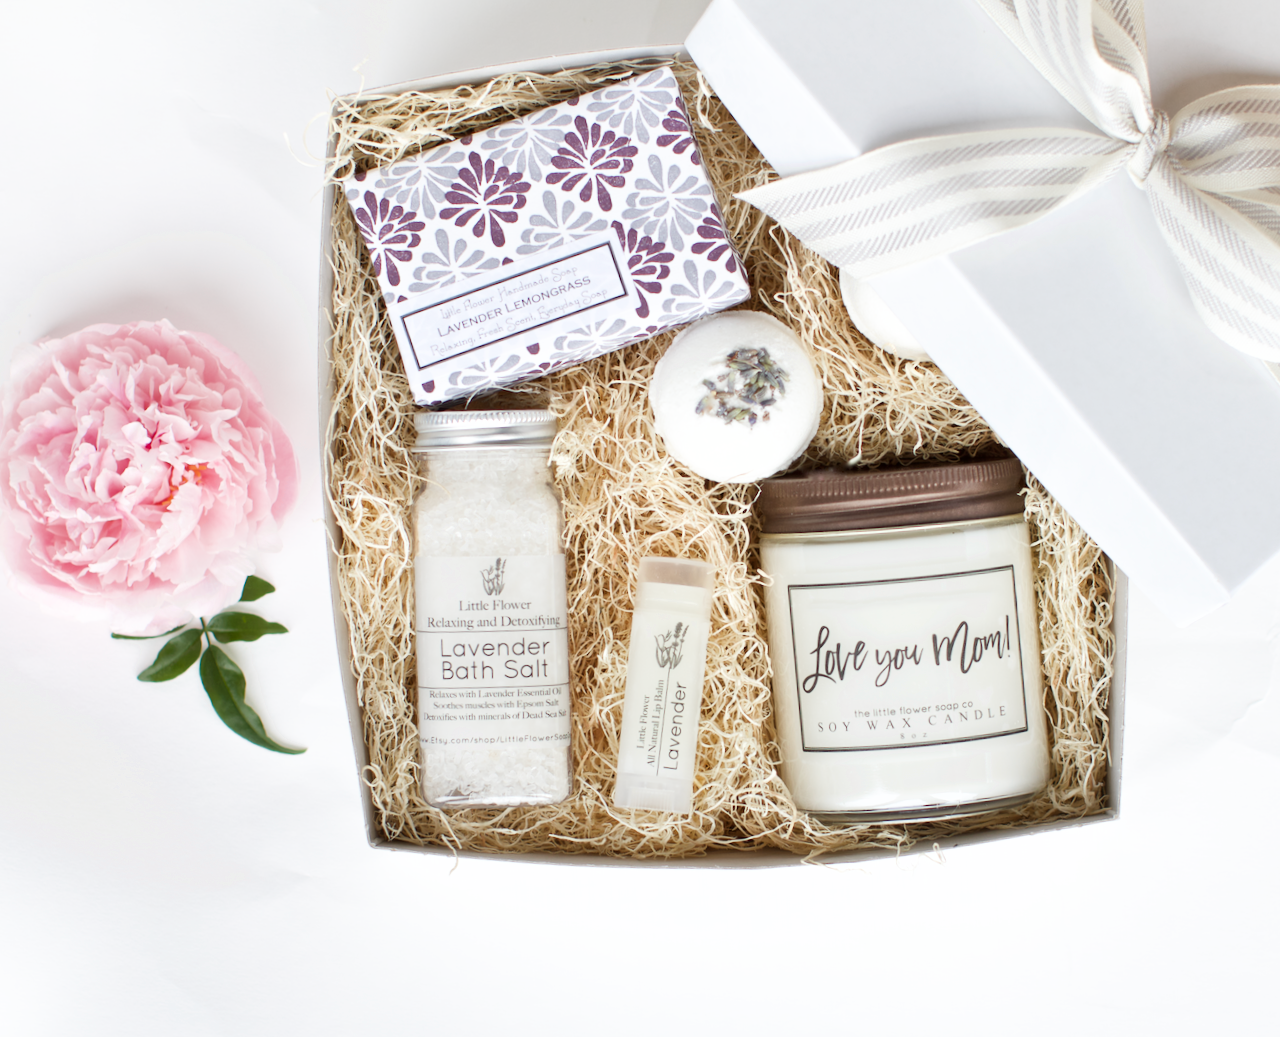 "Luxury Lavender Gift Box $38    This is our Top Pick for Mom in 2019 A best seller in 2018 this Luxury Lavender Relaxation Gift Box received some seriously amazing reviews:  ""My mother in law loved it! She lives far from us so this was a blessing to send her already wrapped and ready to gift."" ~Brandi K.  ""My mother loved it! Said the smell and packaging was beautiful. It was delivered in time for Mother's Day, even though it was shipped to Puerto Rico! Thanks for making me look good!"